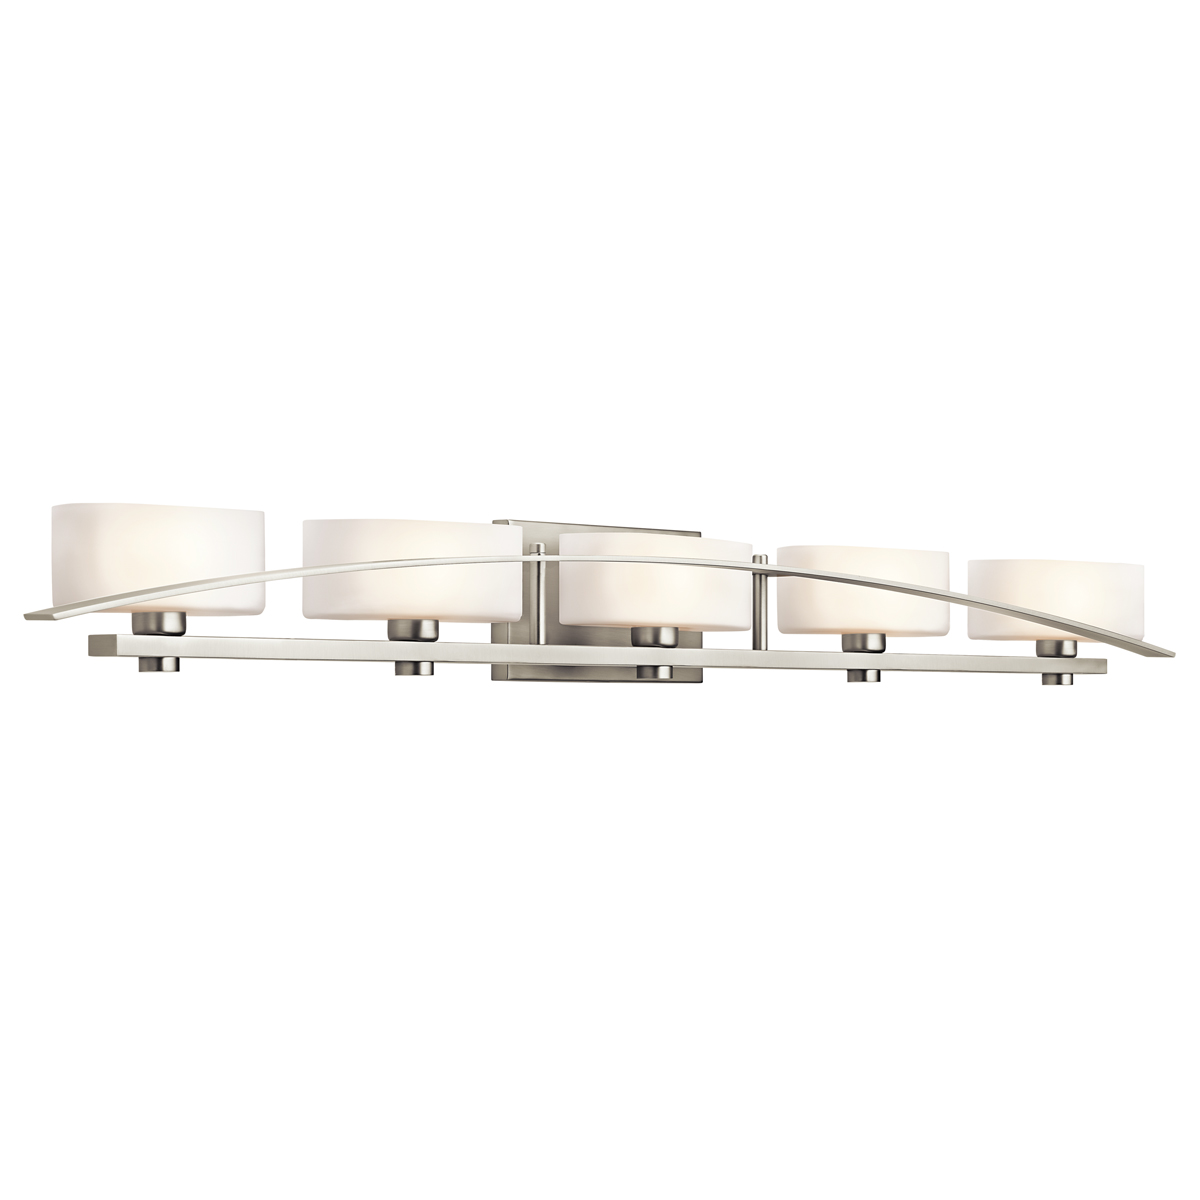 Kichler Lighting 45319ni Suspension 5 Light Bath Fixture In Brushed Nickel